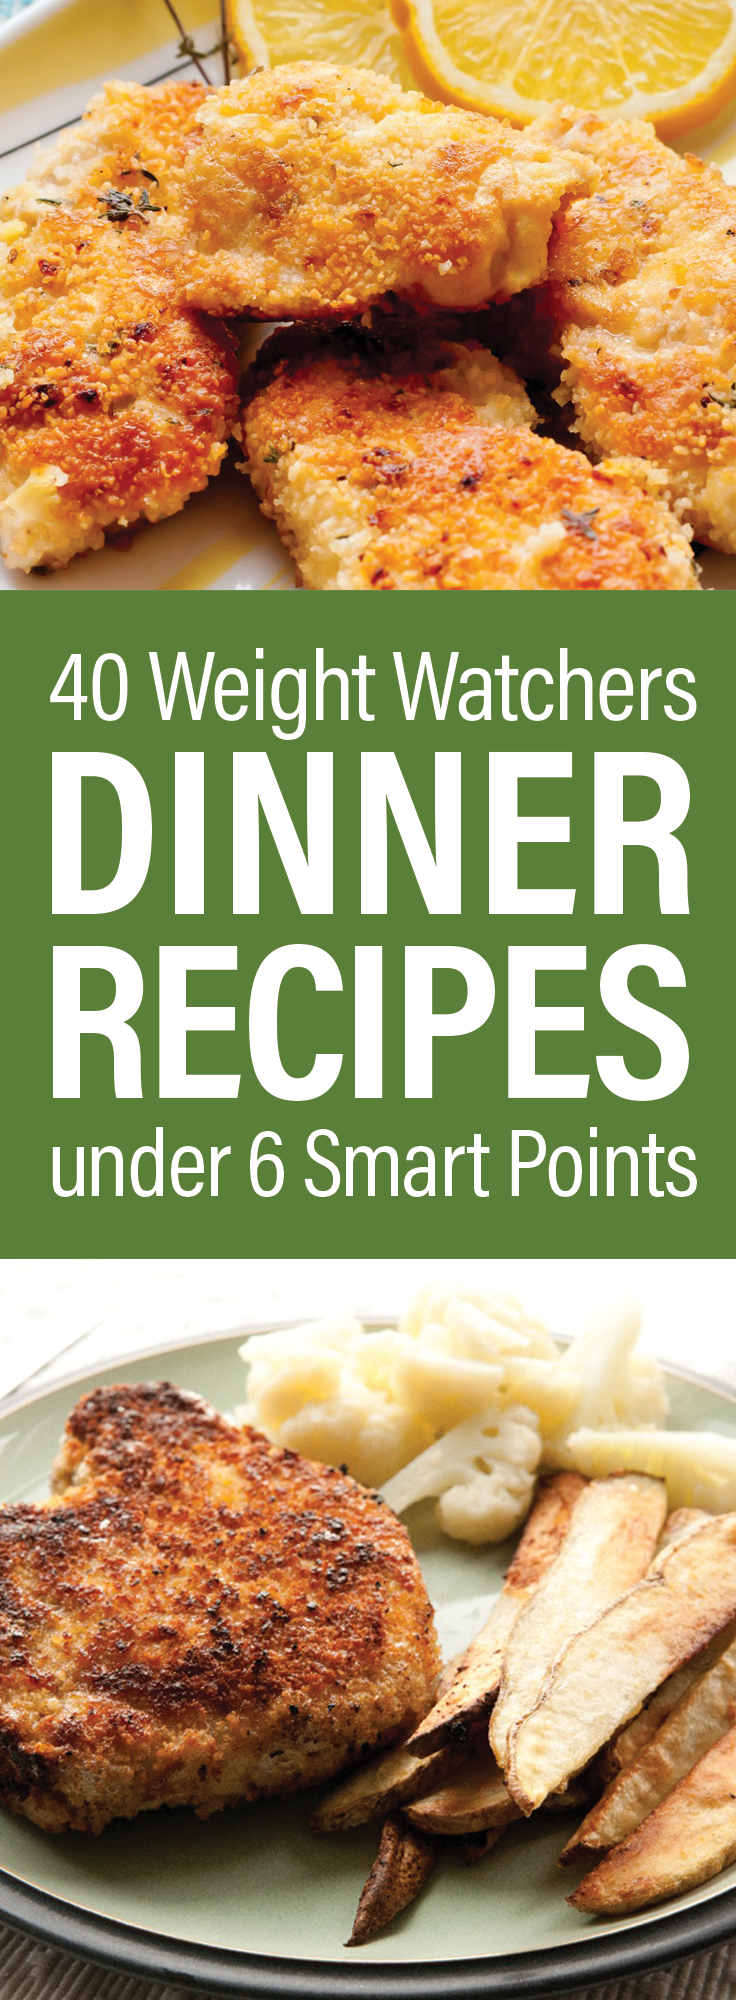 40 Weight Watchers Dinner Recipes Under 6 SmartPoints Including Lemon And Herb Shrimp Baked Egg Drop Soup Cheese Souffle Pork Chops